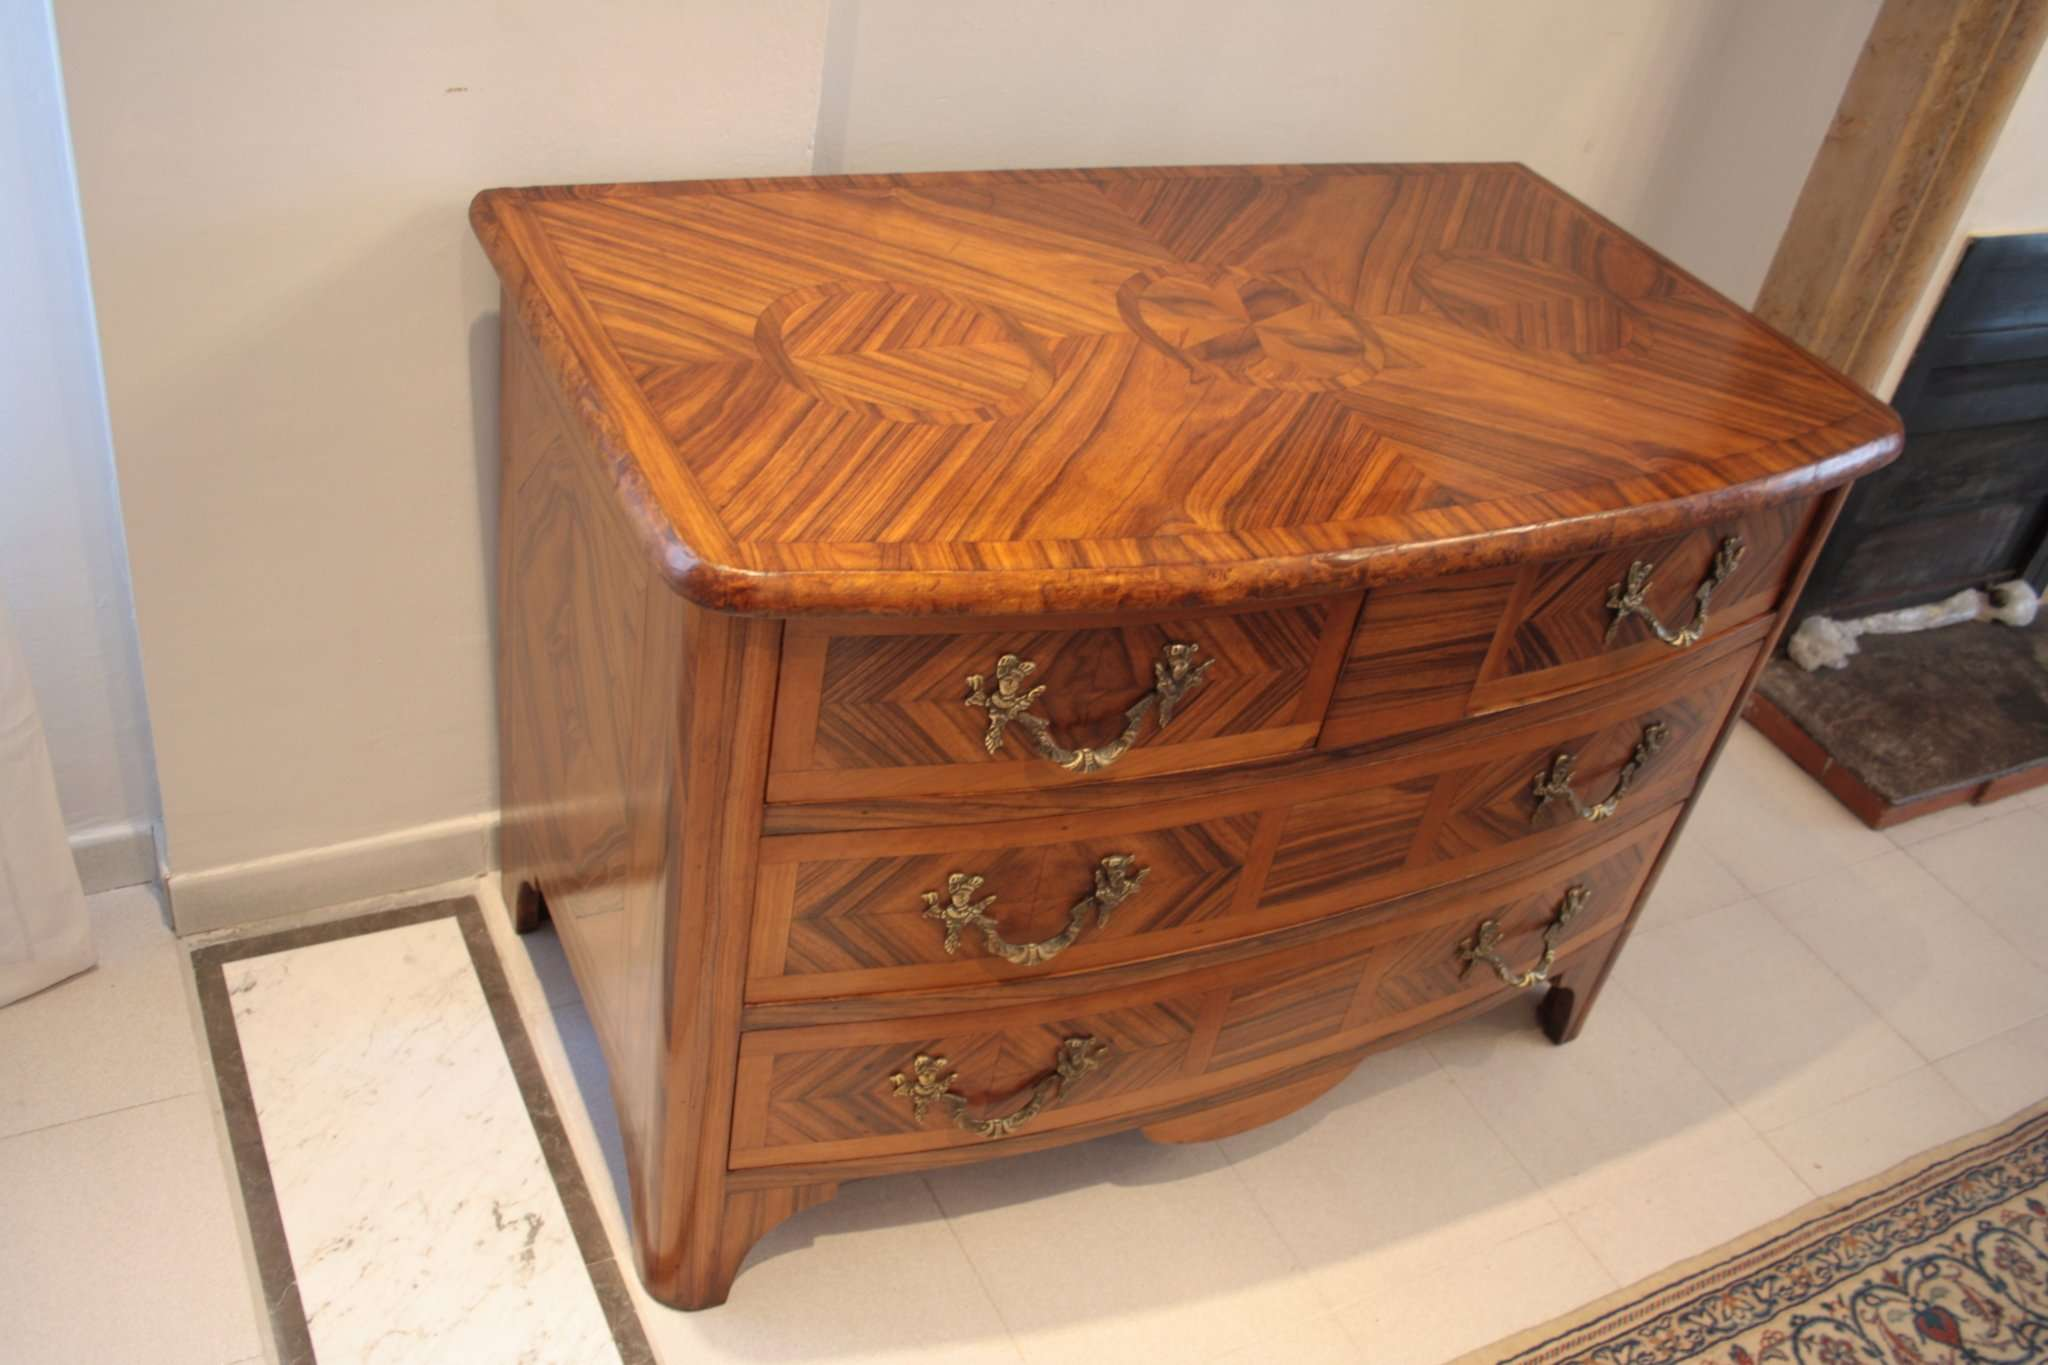 Walnut Louis XVI chest drawers southern Italy